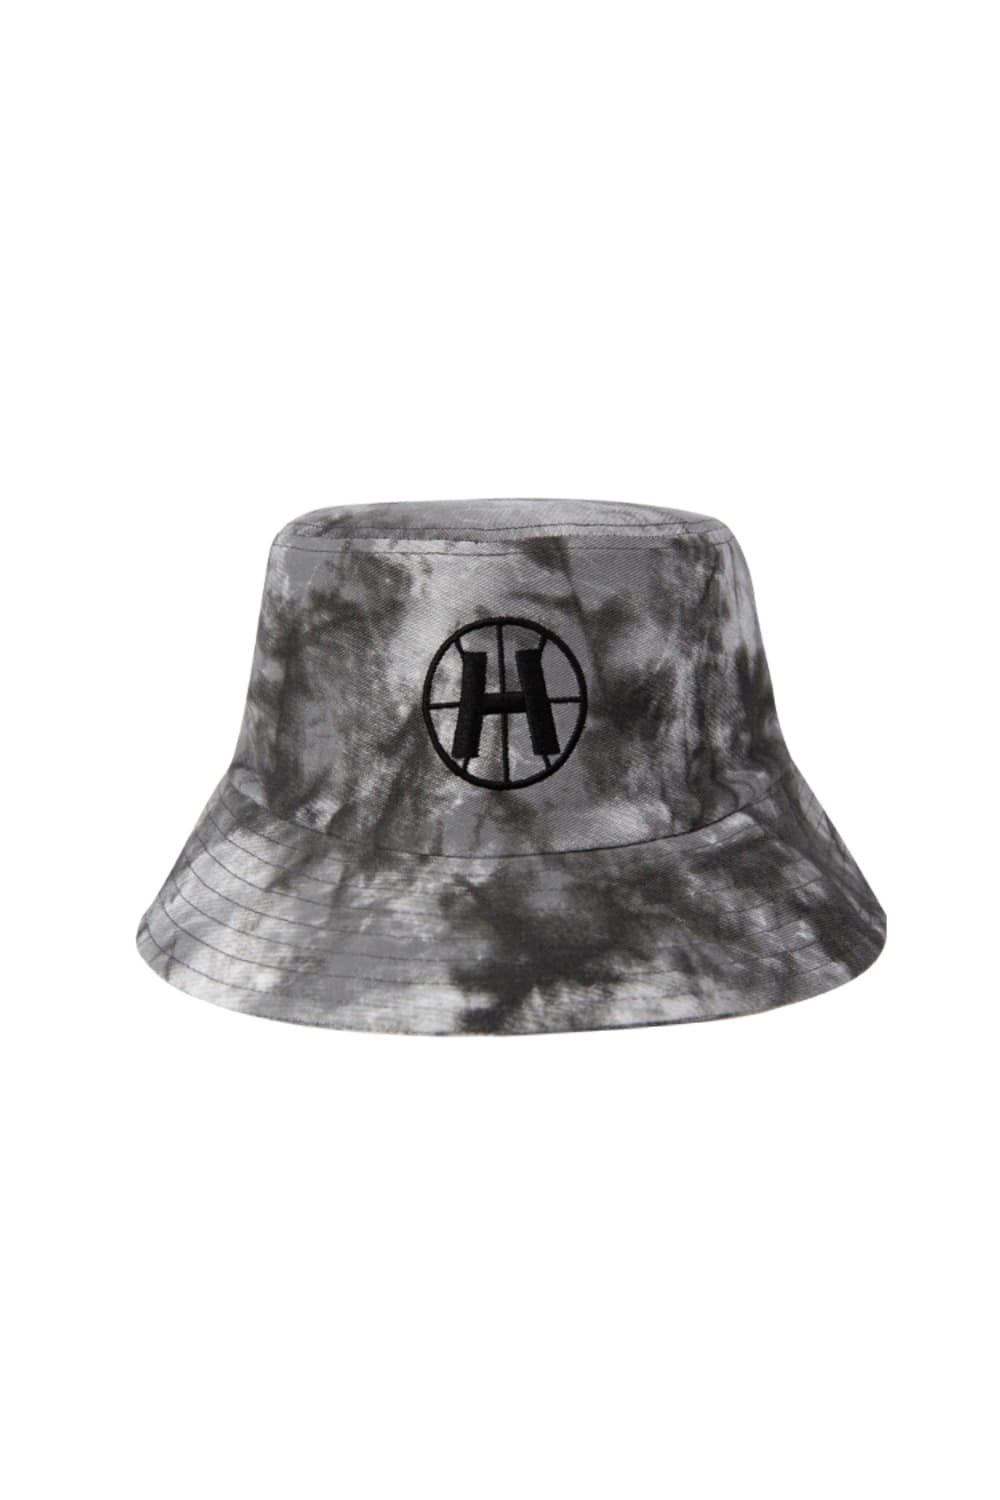 HIDE Tie Dye Bucket Hat BLACK